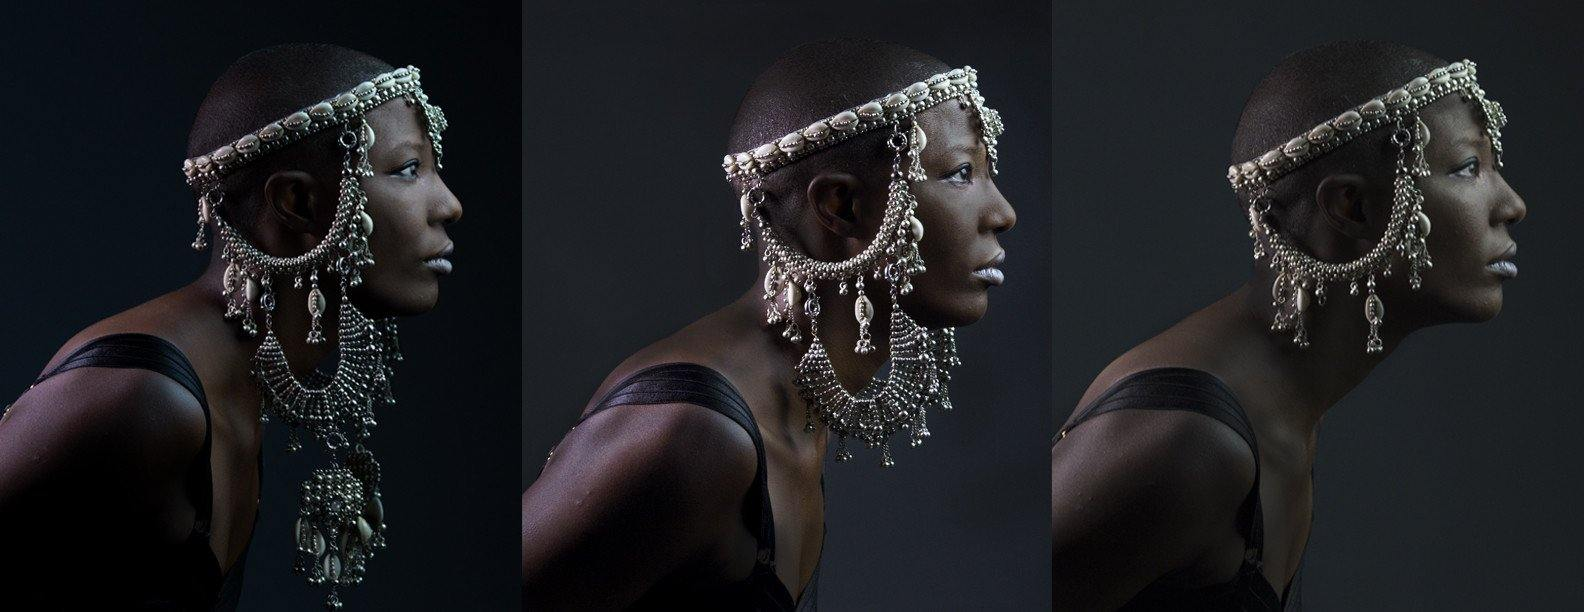 Rushi Headpiece System